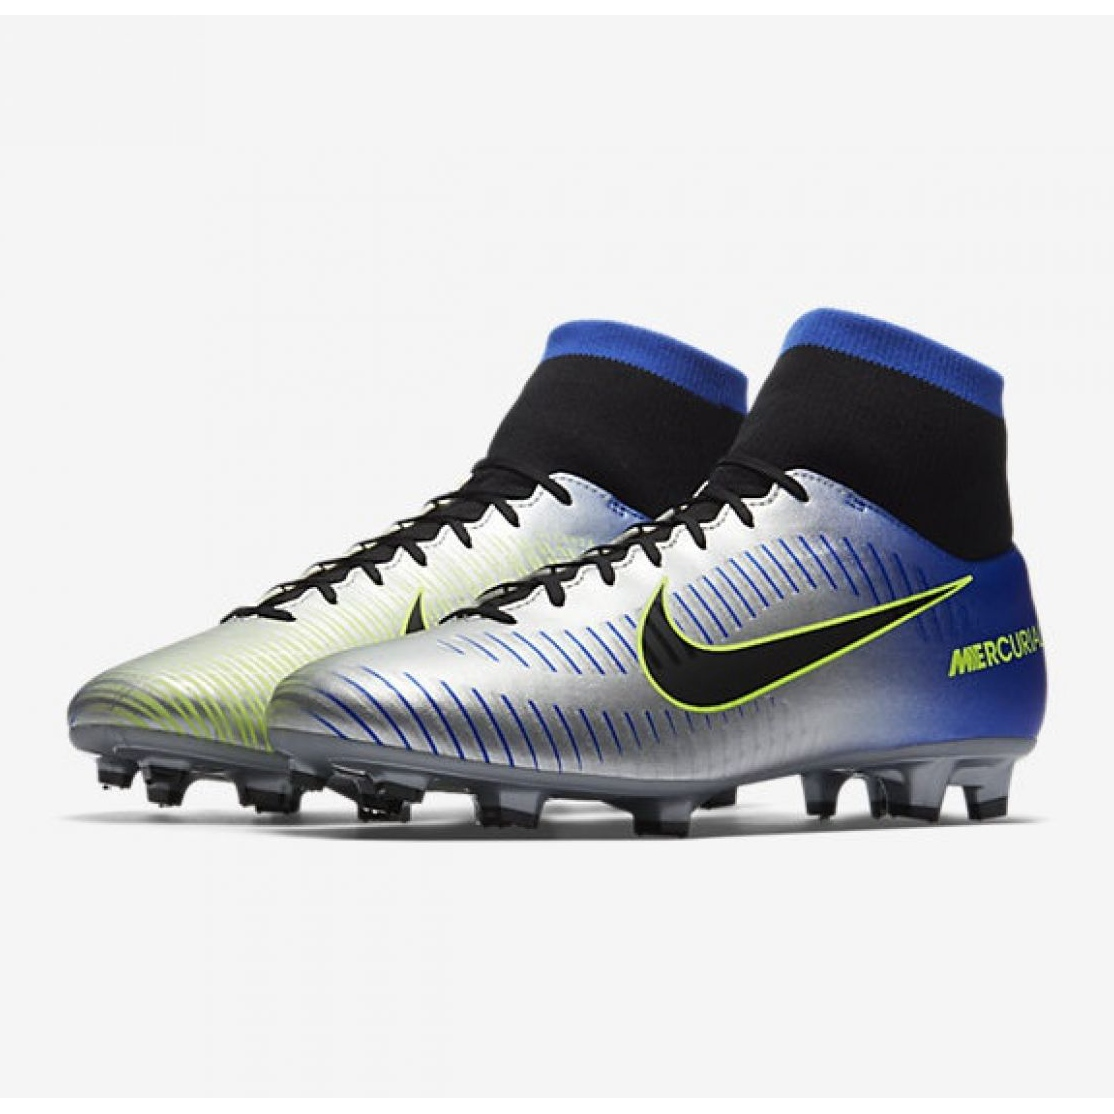 sports shoes dc1d7 e9b2d Nike Mercurial Victory Vi Df Fg Neymar M 921506-407